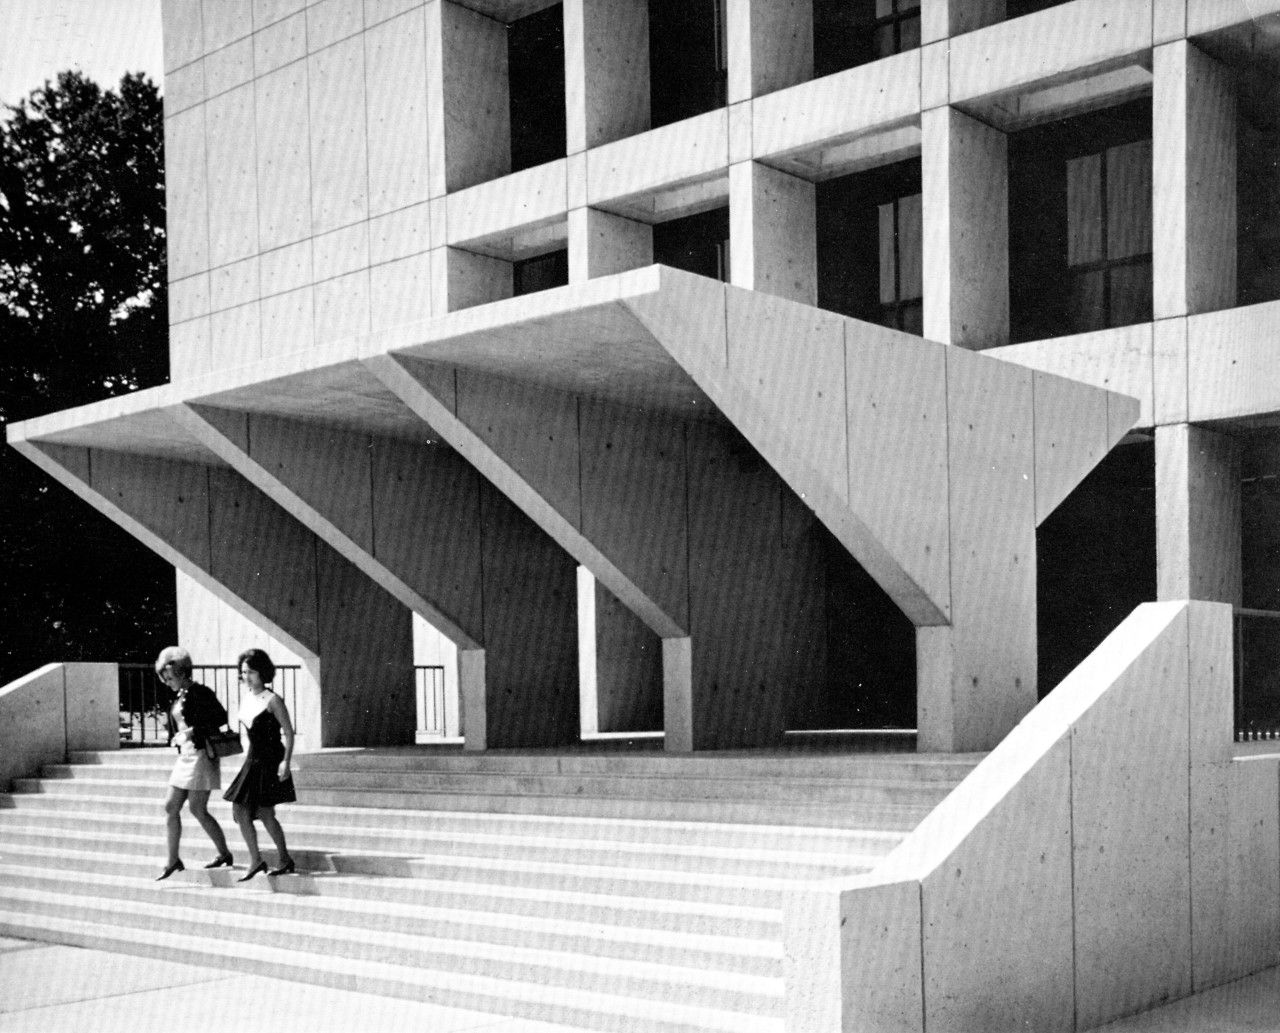 Wassell Randolph Student Alumni Center, University of Memphis, 1960s by Gassner/Nathan/Browne Architects